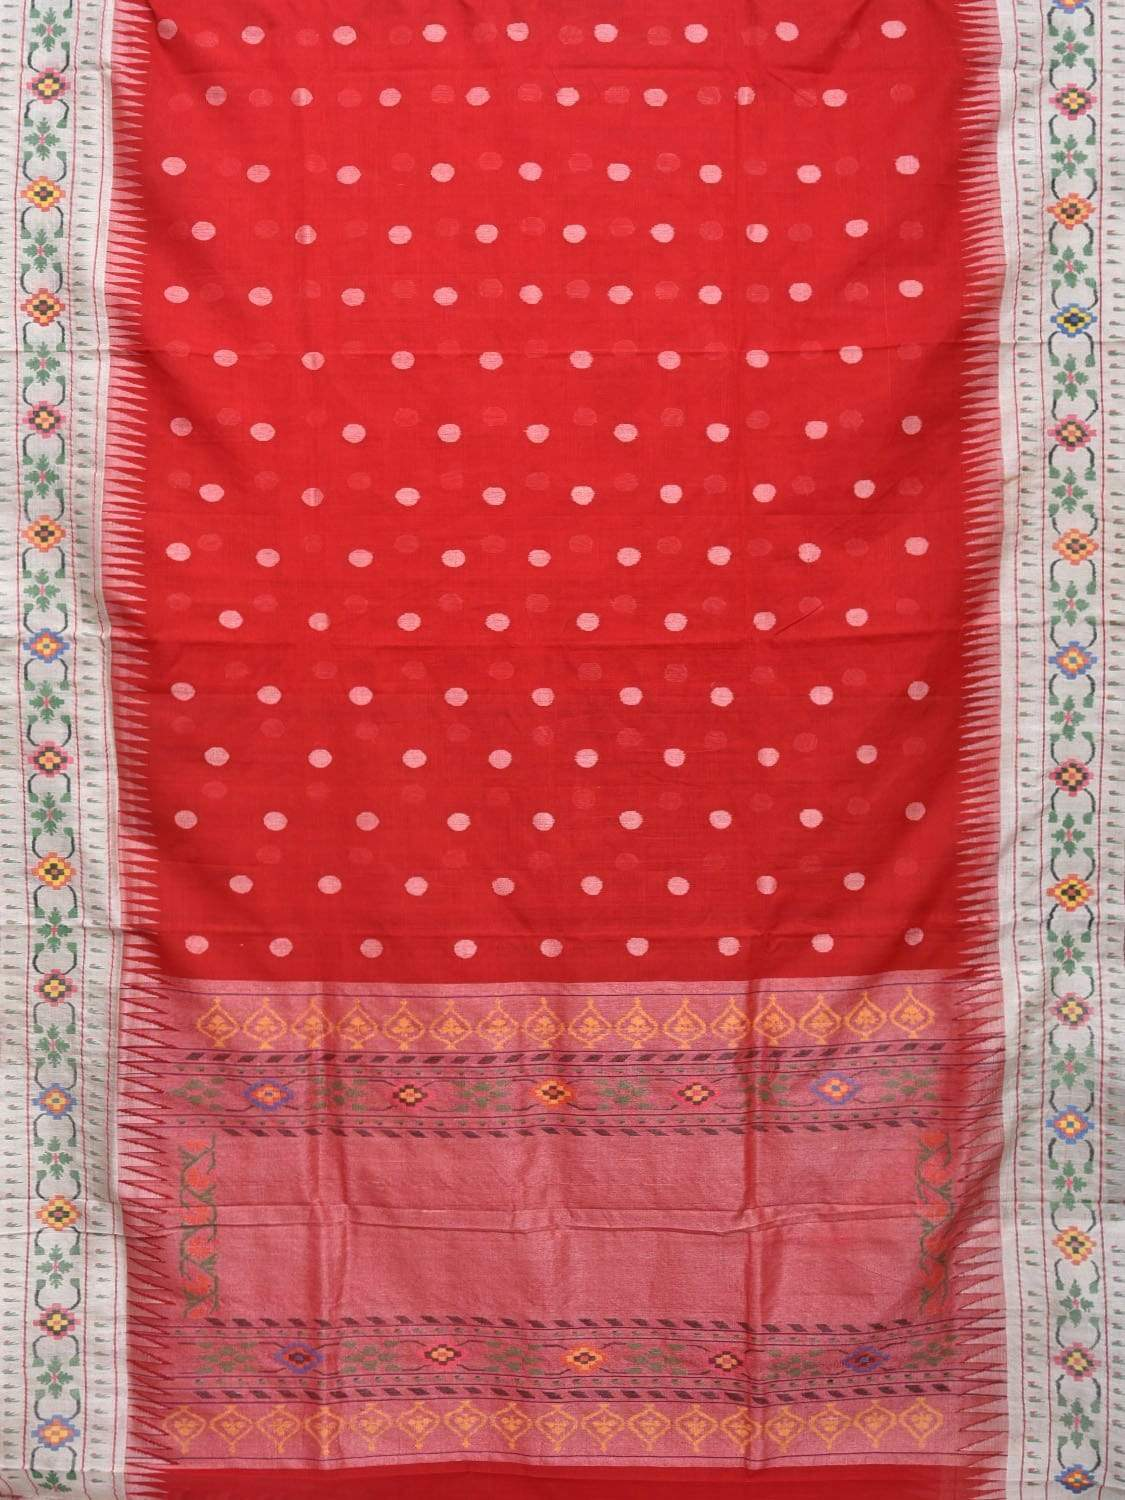 Red Paithani Cotton Handloom Saree with Body Buta and Border Design p0345